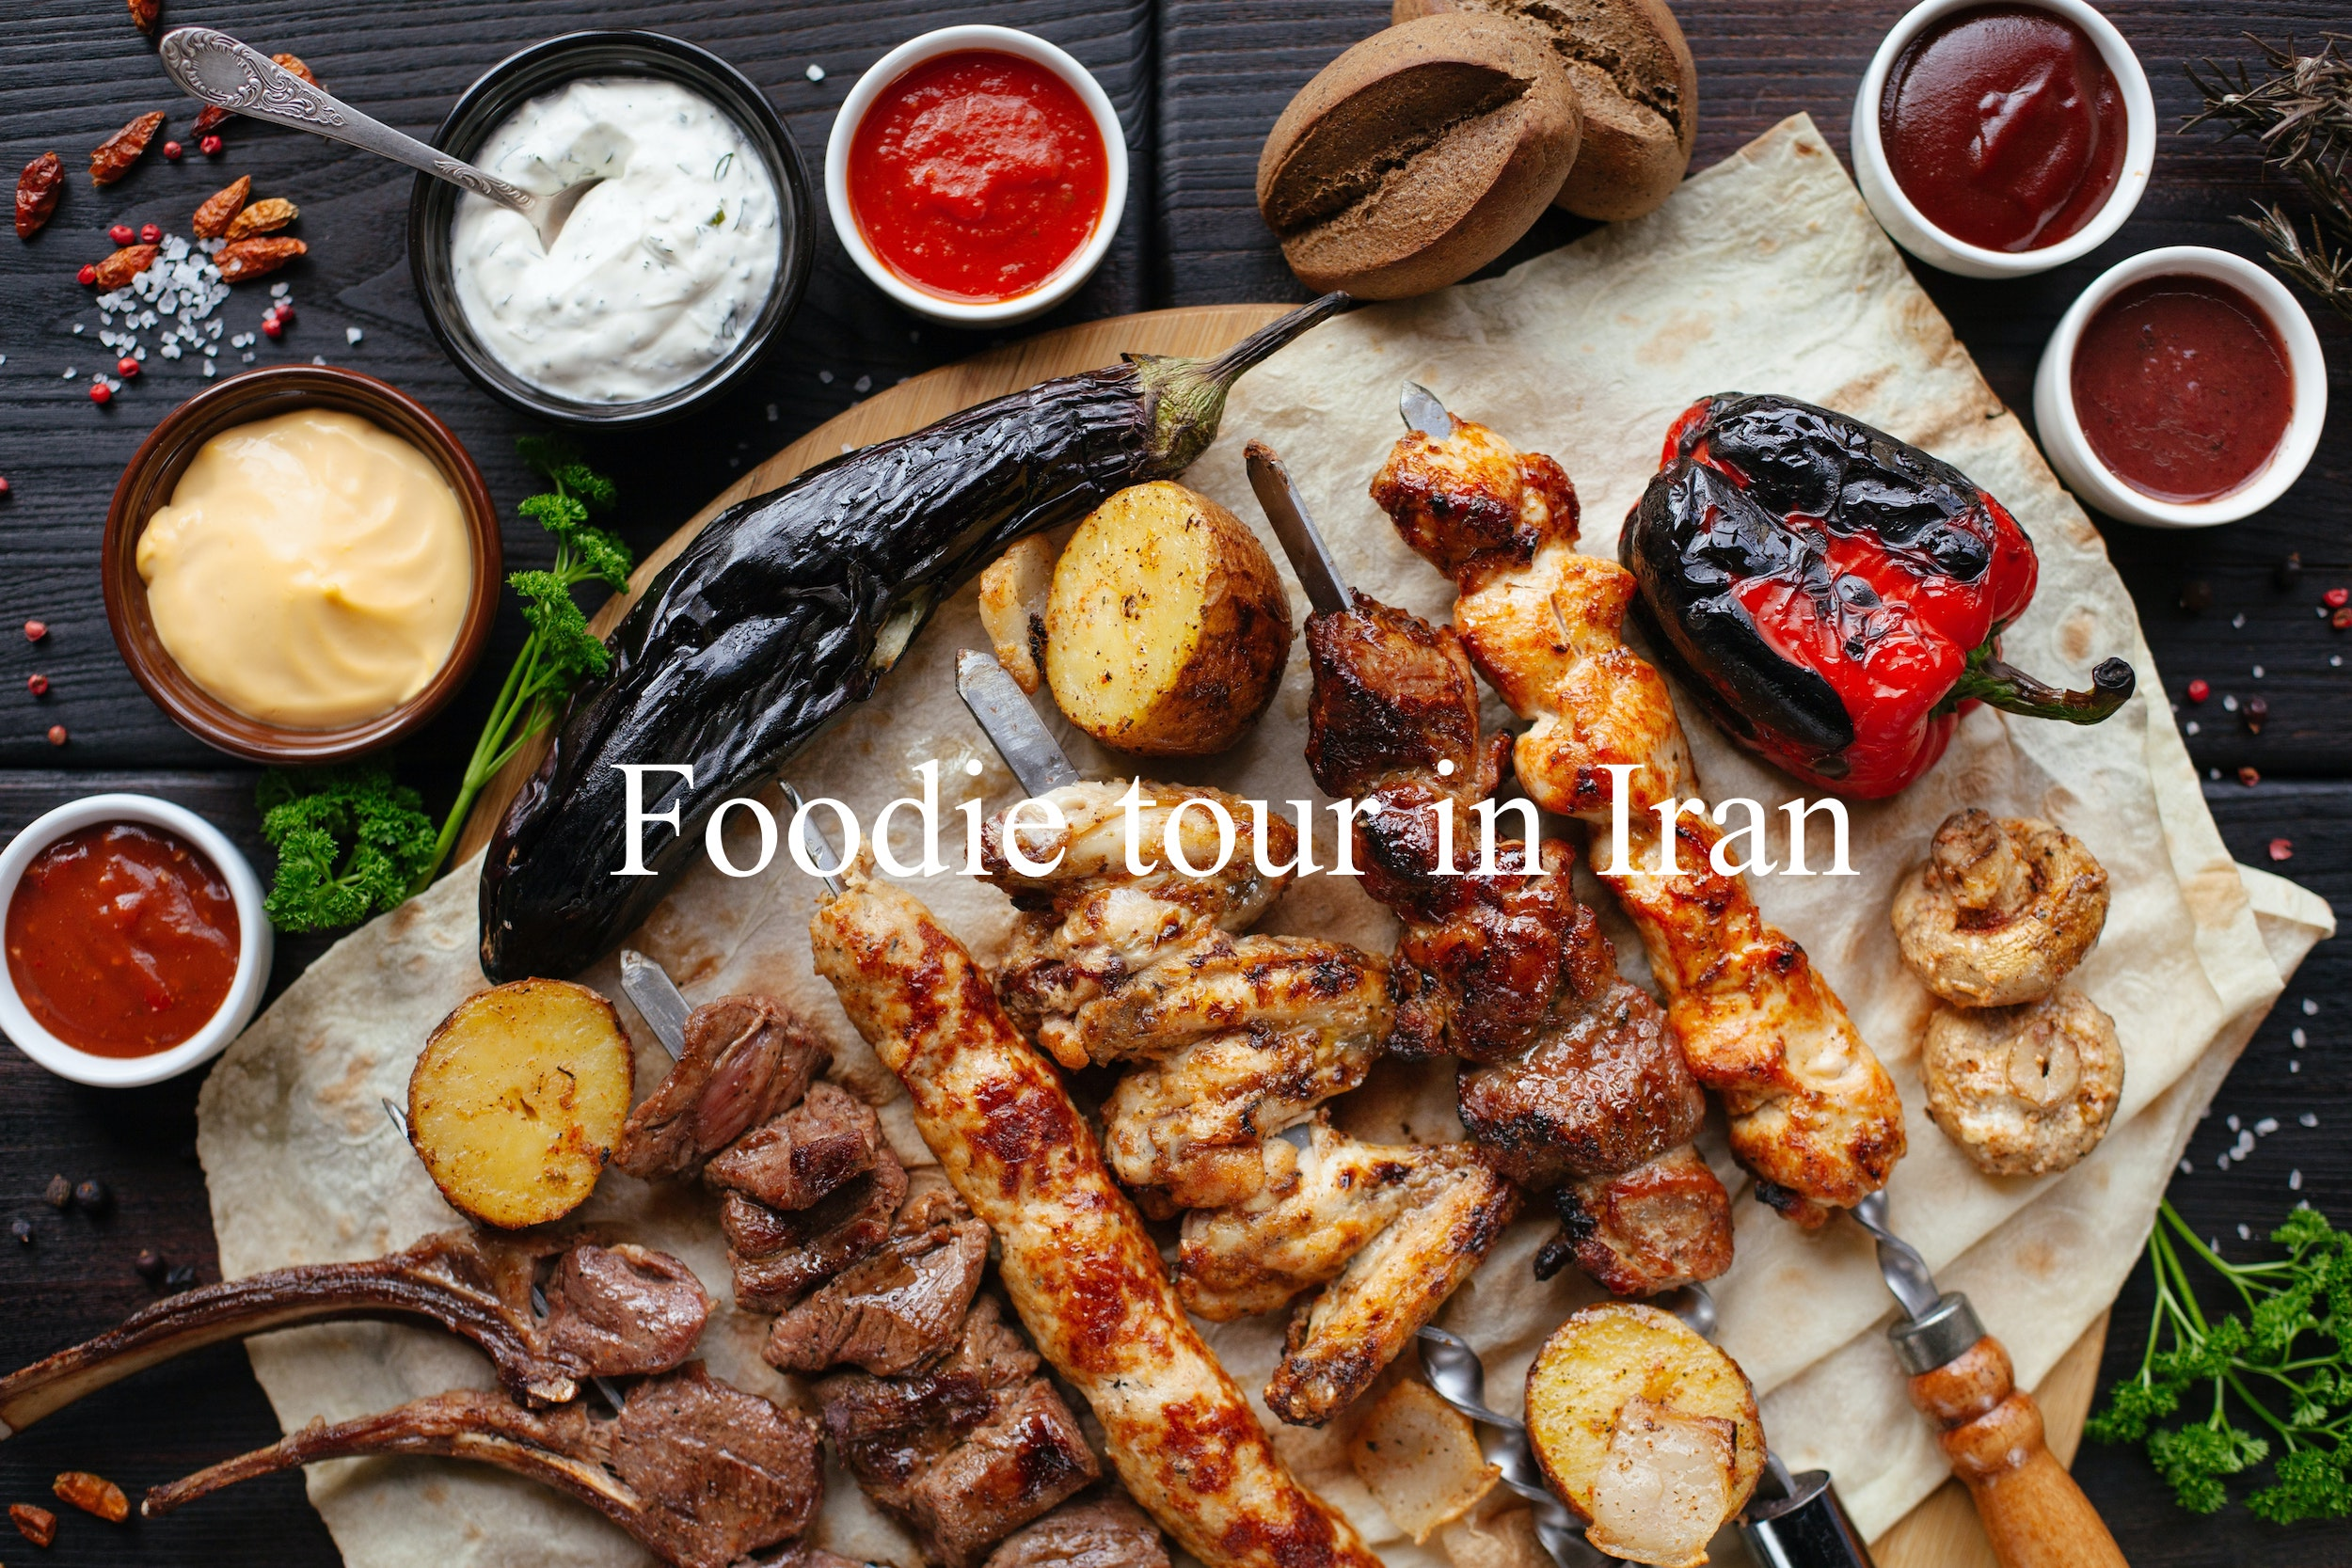 Foodie tour in Iran